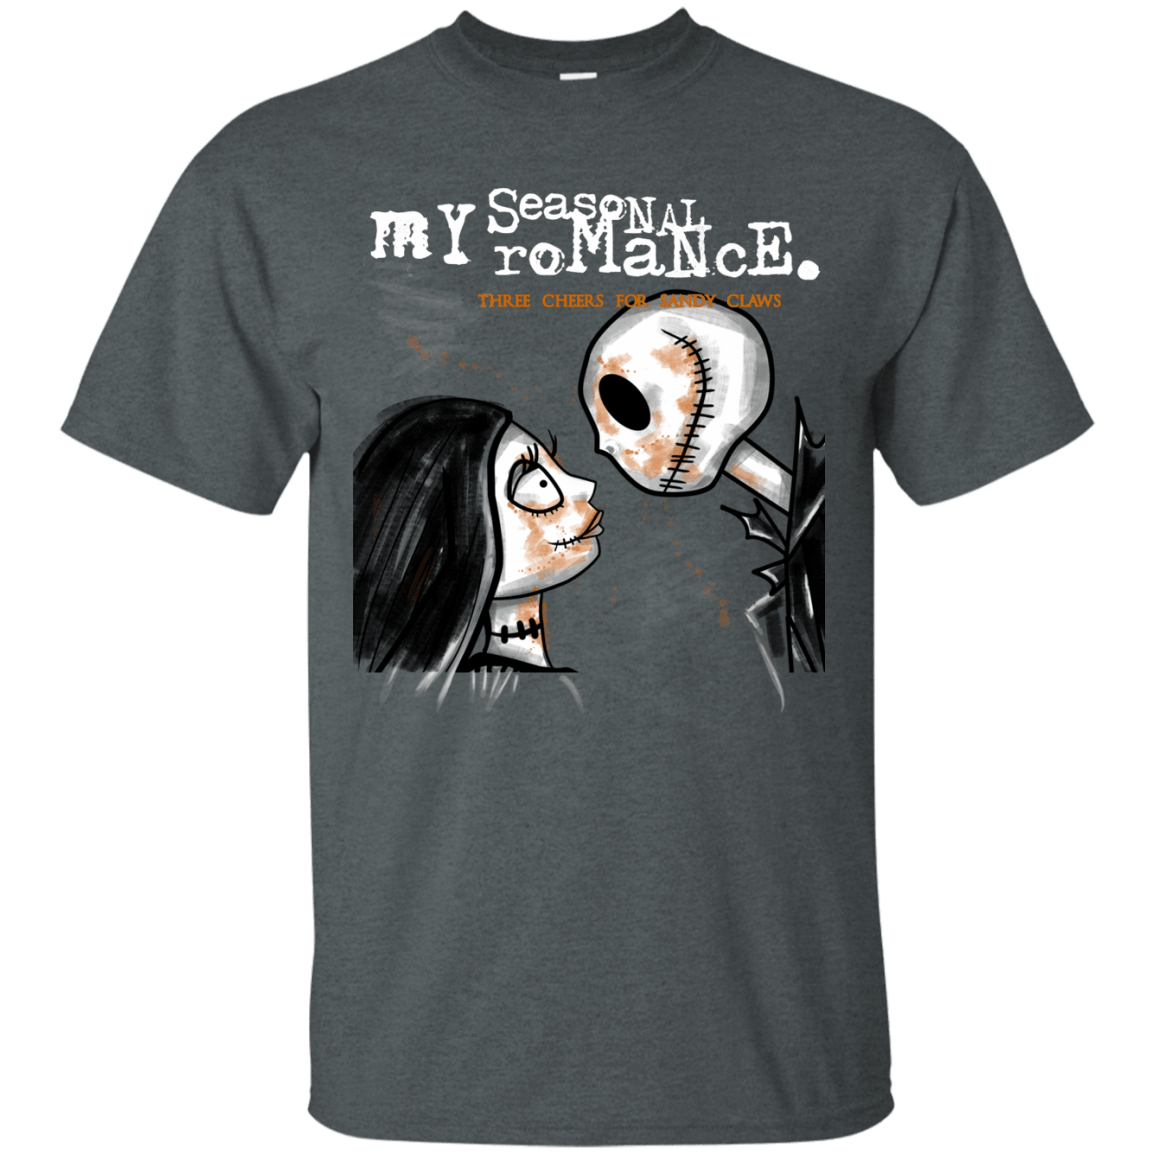 MY SEASONAL ROMANCE T-Shirt